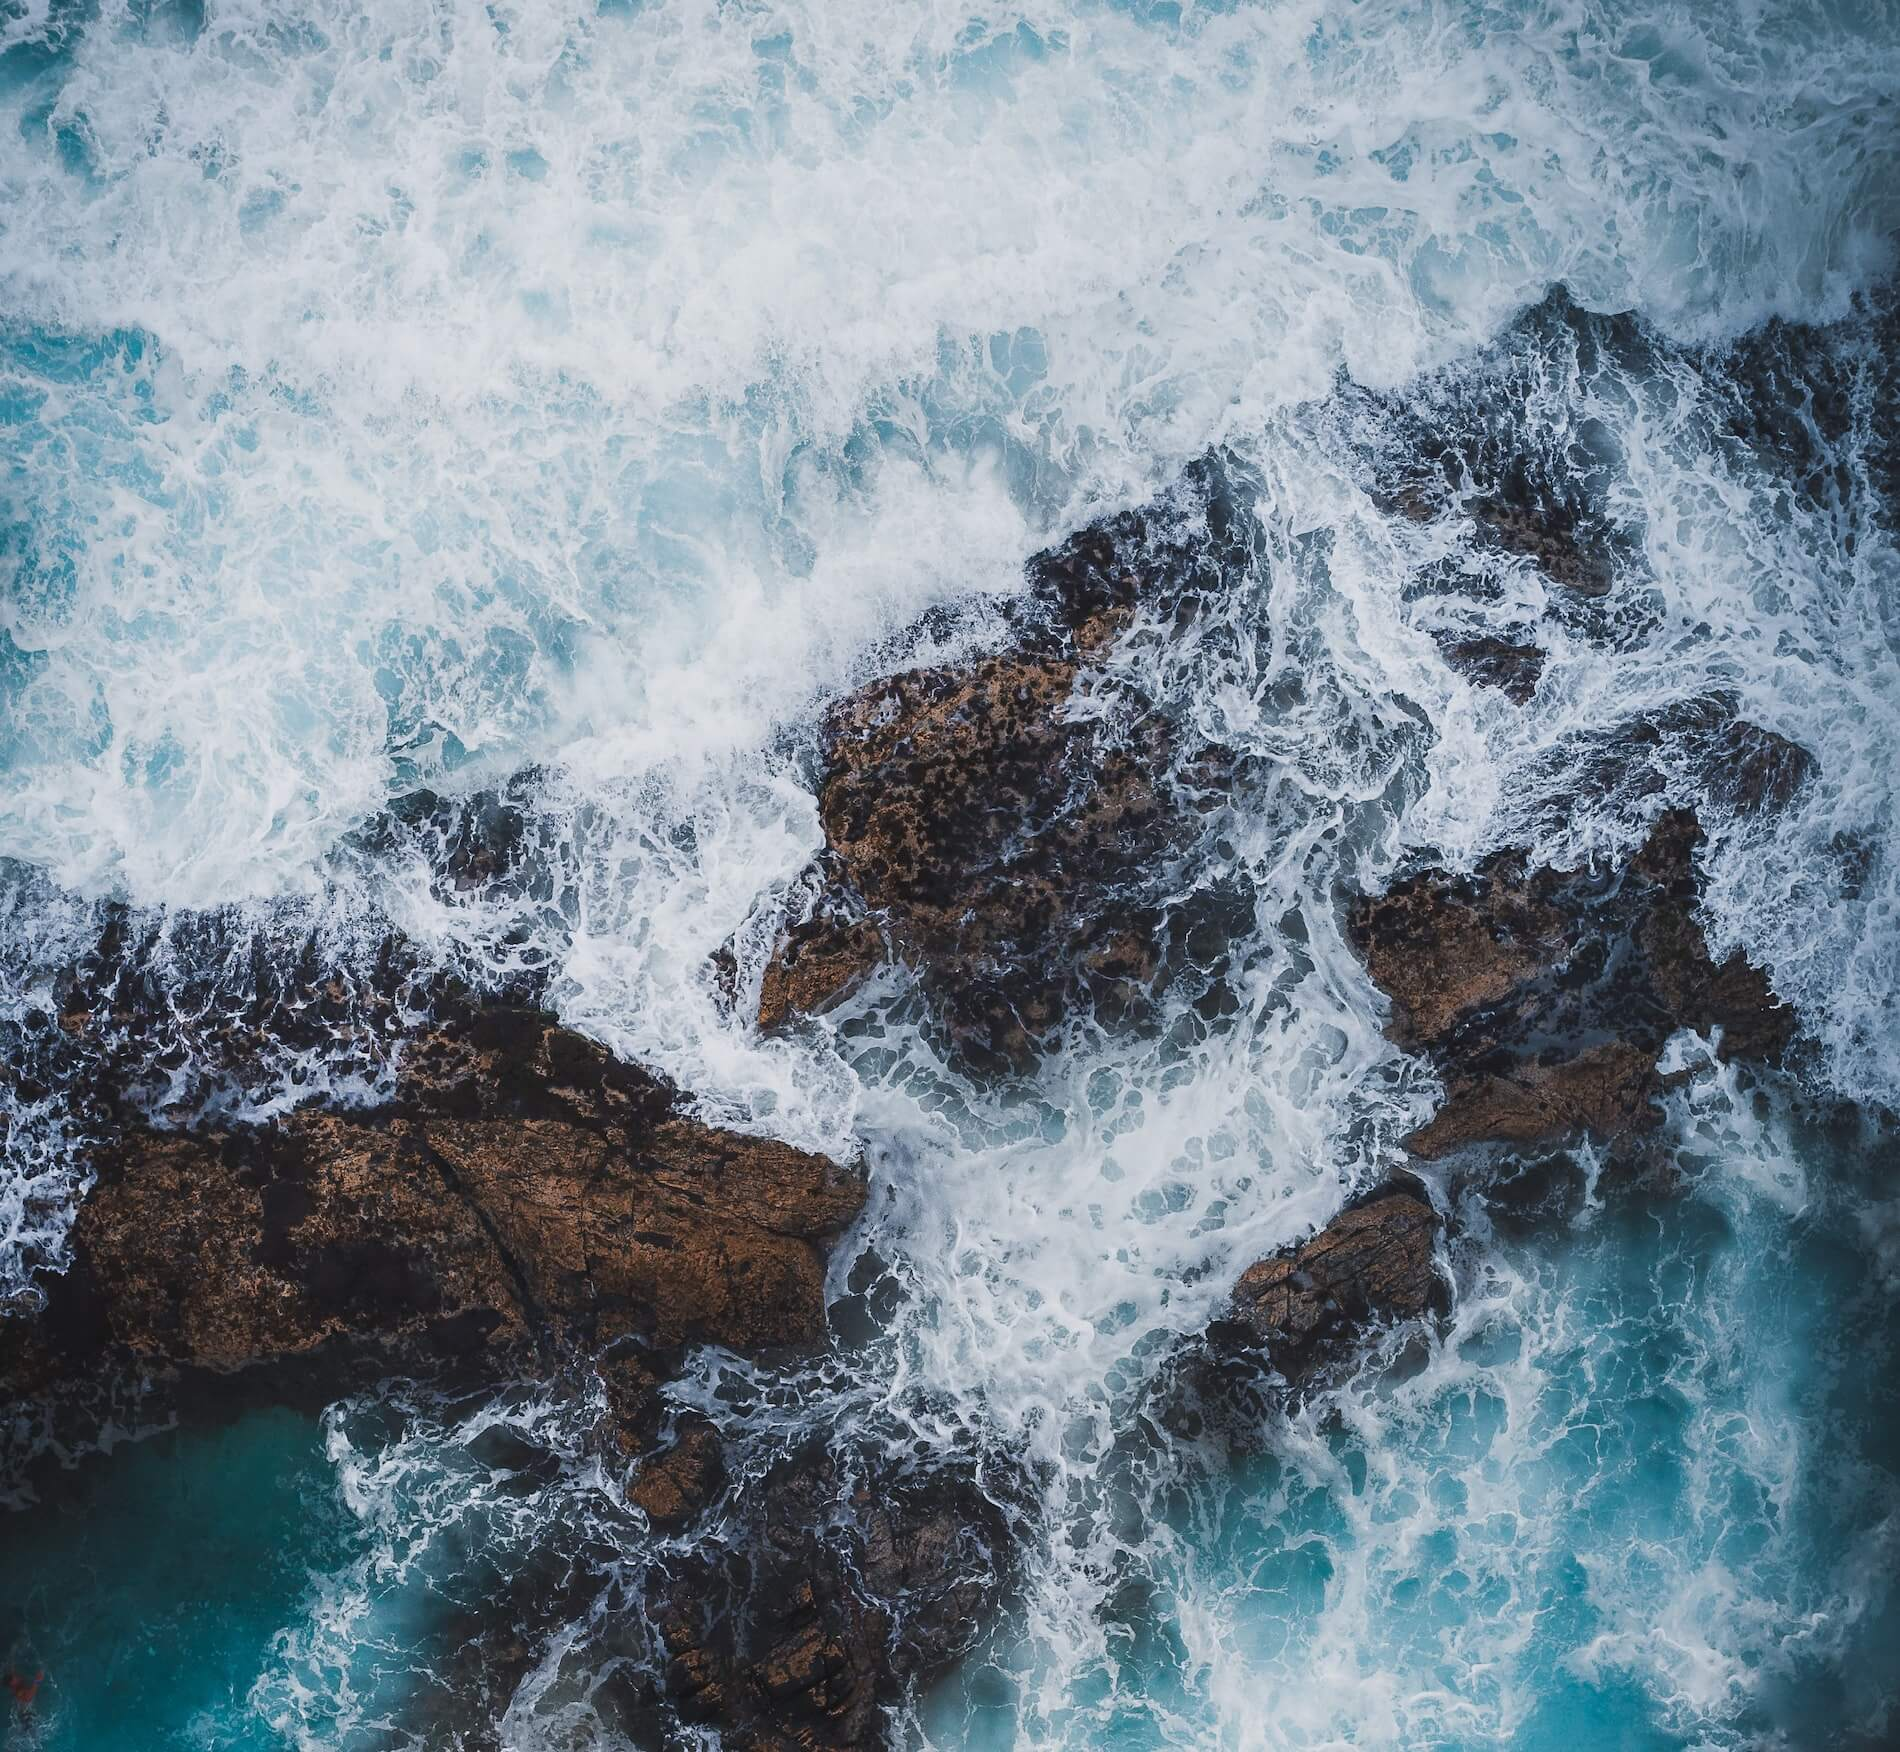 "<span>Photo by <a href=""https://unsplash.com/@withluke?utm_source=unsplash&amp;utm_medium=referral&amp;utm_content=creditCopyText"">Luke Stackpoole</a> on <a href=""https://unsplash.com/?utm_source=unsplash&amp;utm_medium=referral&amp;utm_content=creditCopyText"">Unsplash</a></span>"